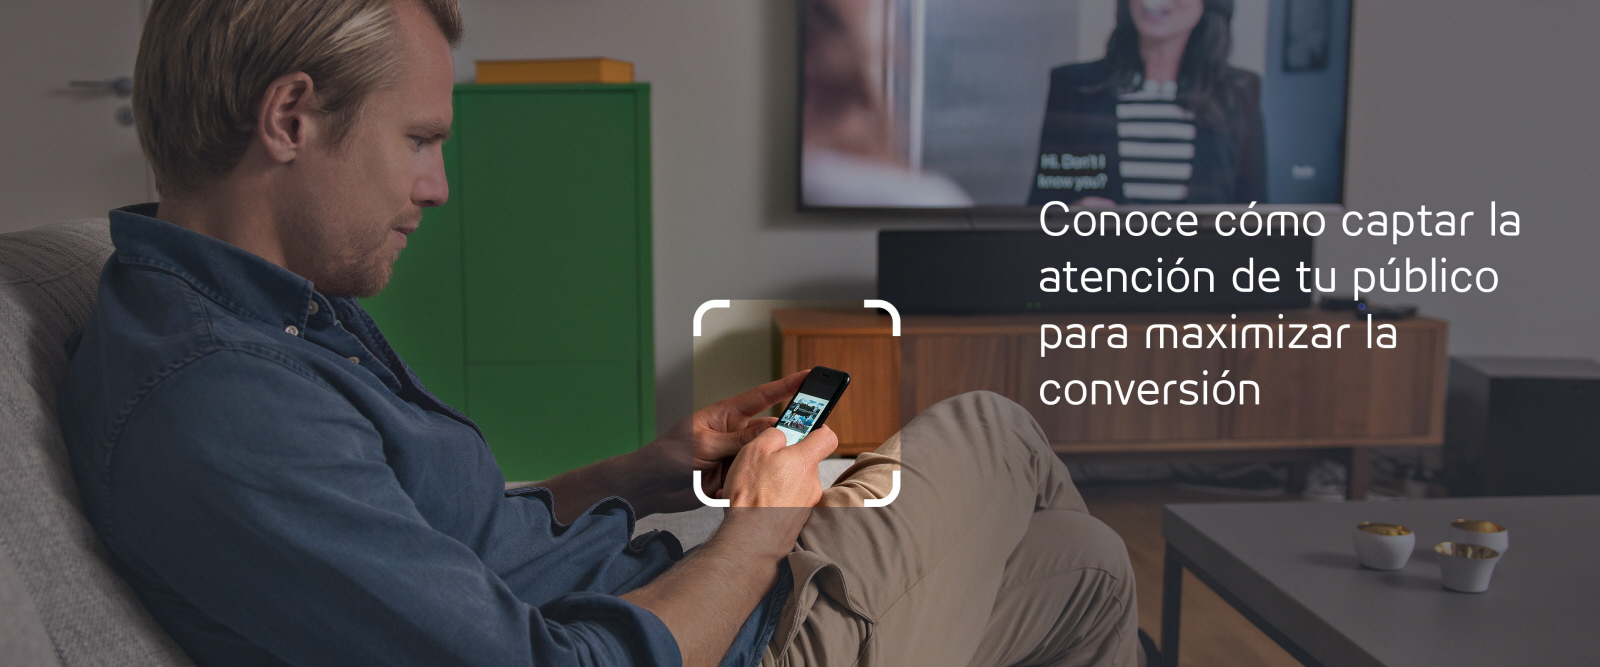 Content Engagement Page Image Banner 2 - Spanish